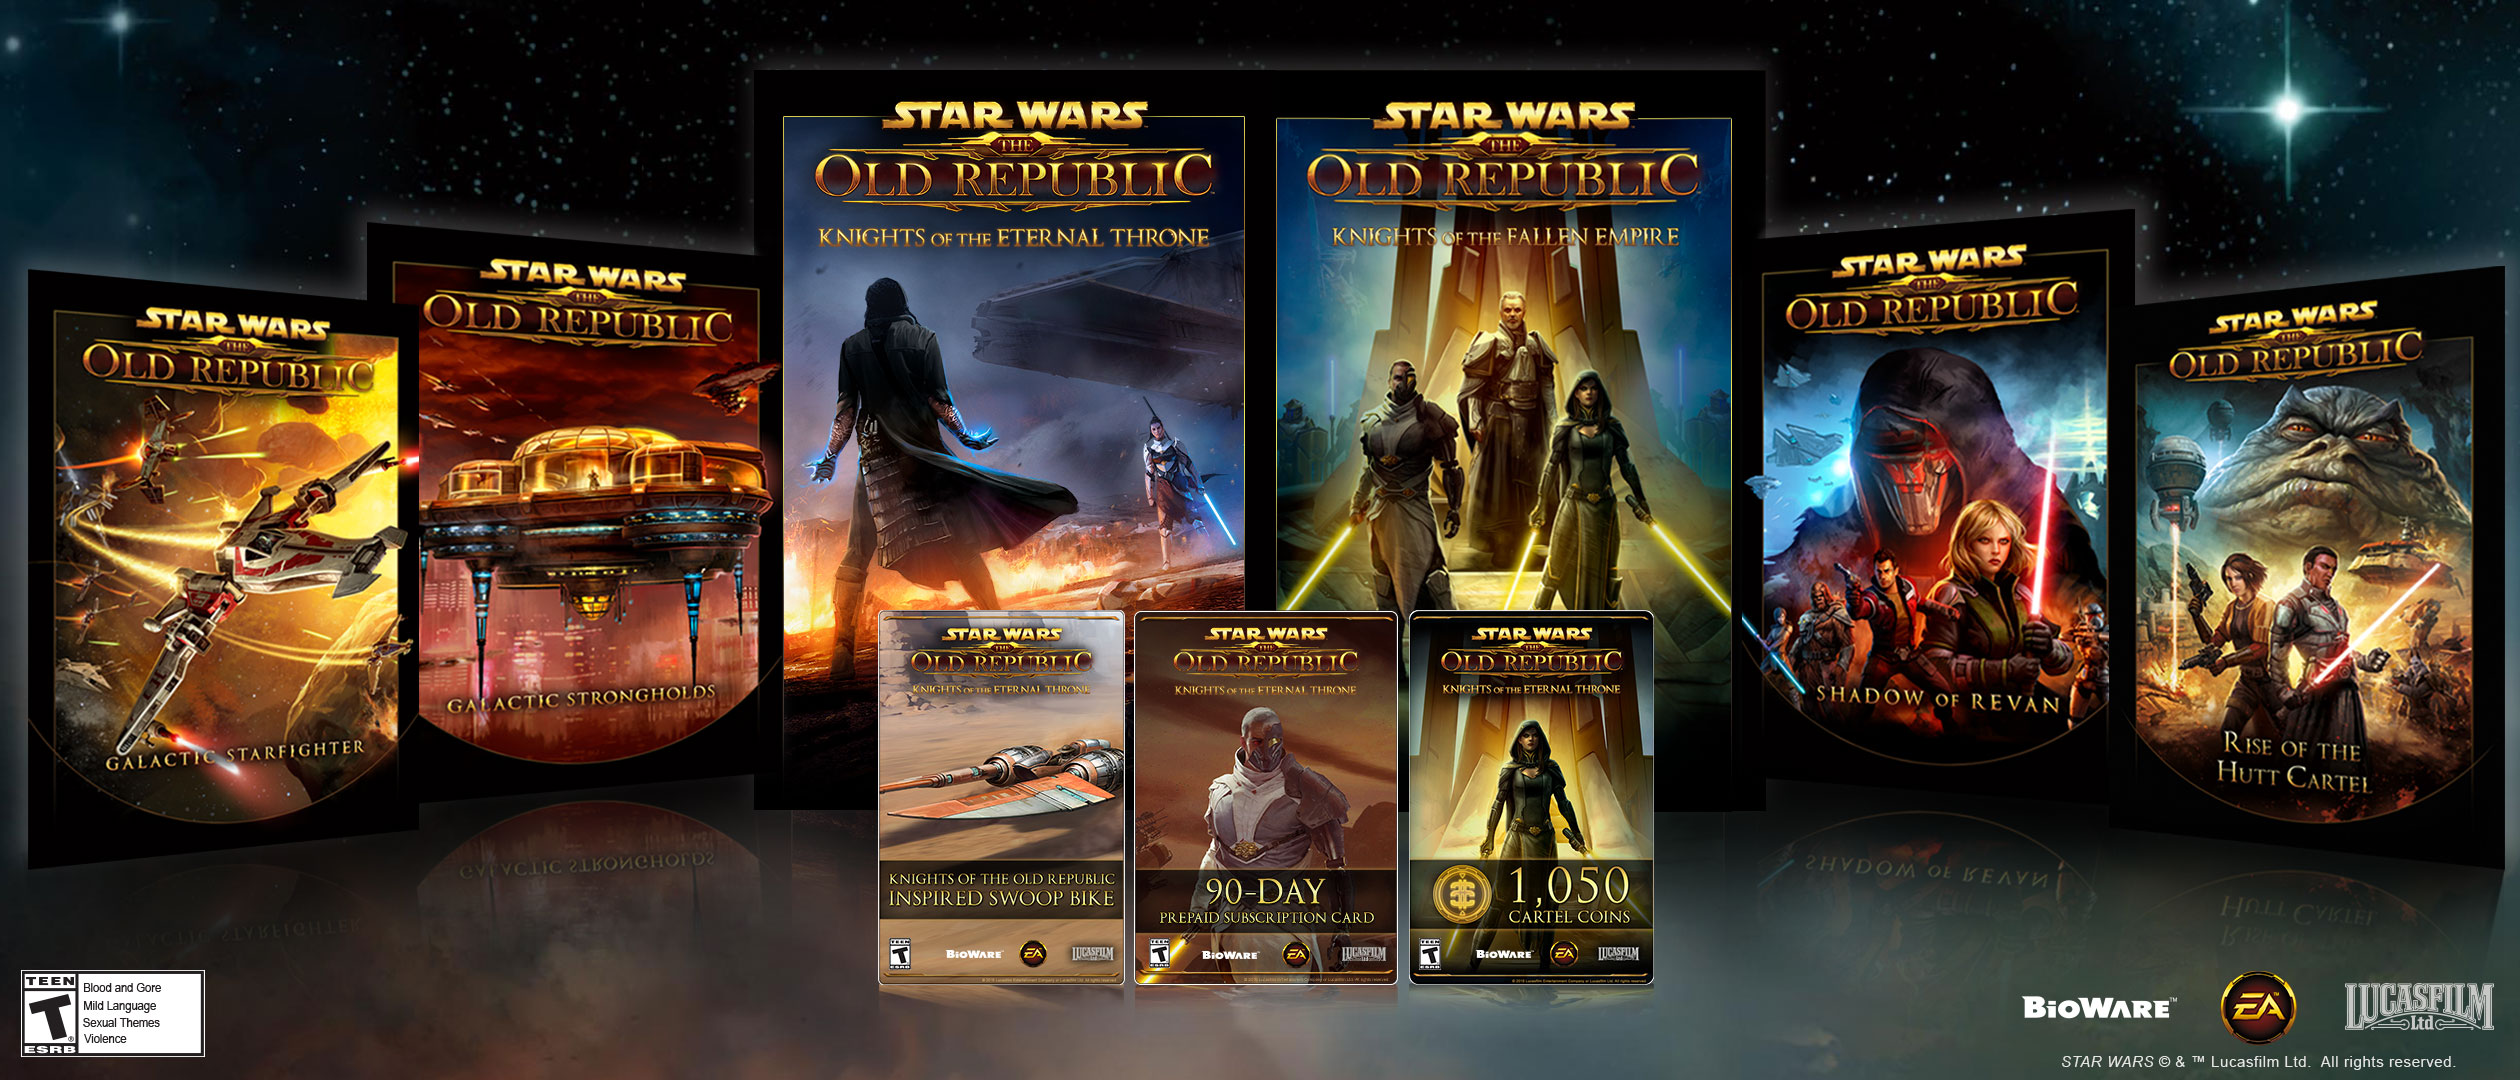 Software : Star Wars: The Old Republic – Knights of the Eternal Throne – Amazon Premium Pack [Online Game Code]